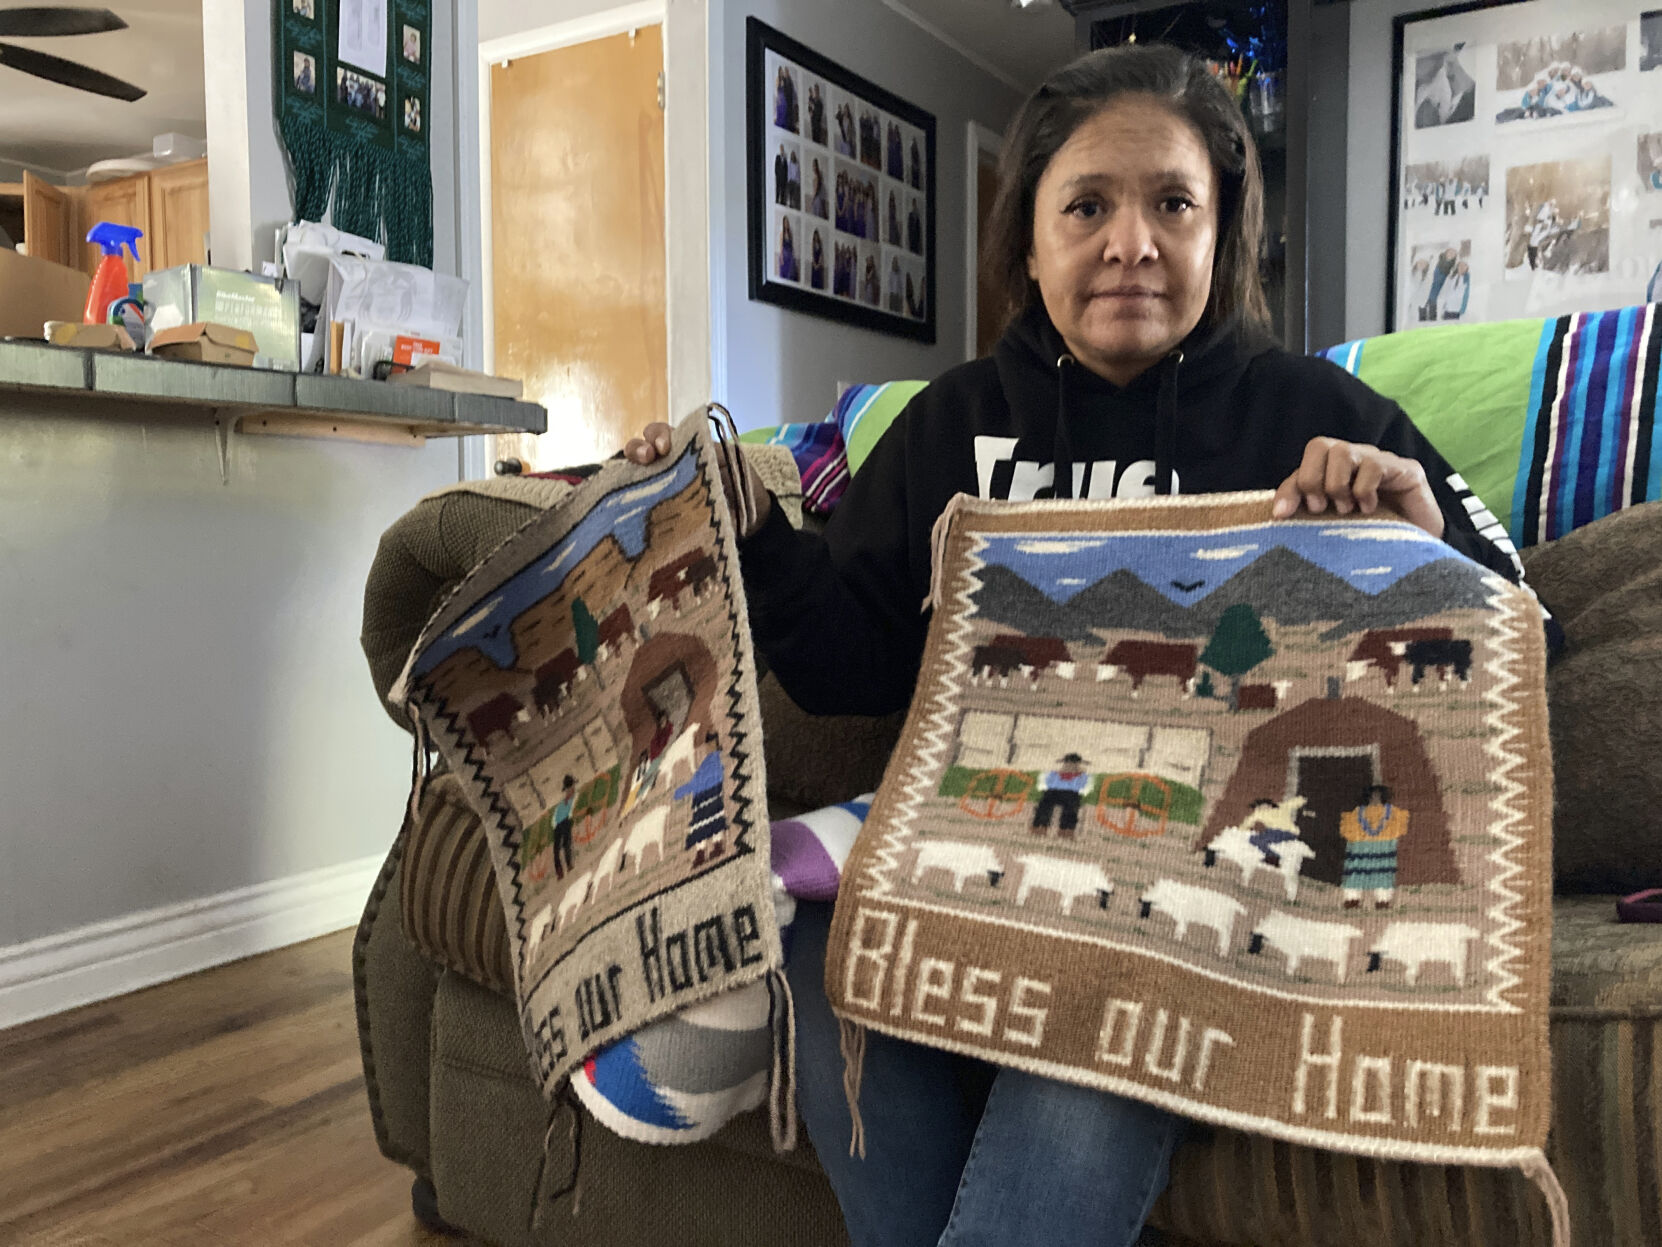 <p>Seraphine Warren poses for a photo in her home in Tooele, Utah, on Sept. 23, 2021, with a rug made by her aunt, Navajo rug weaver Ella Mae Begay. Begay, 62, disappeared in June, one of thousands of missing Indigenous women across the U.S. The extensive coverage of the Gabby Petito case is renewing calls to also shine a spotlight on missing people of color.</p>